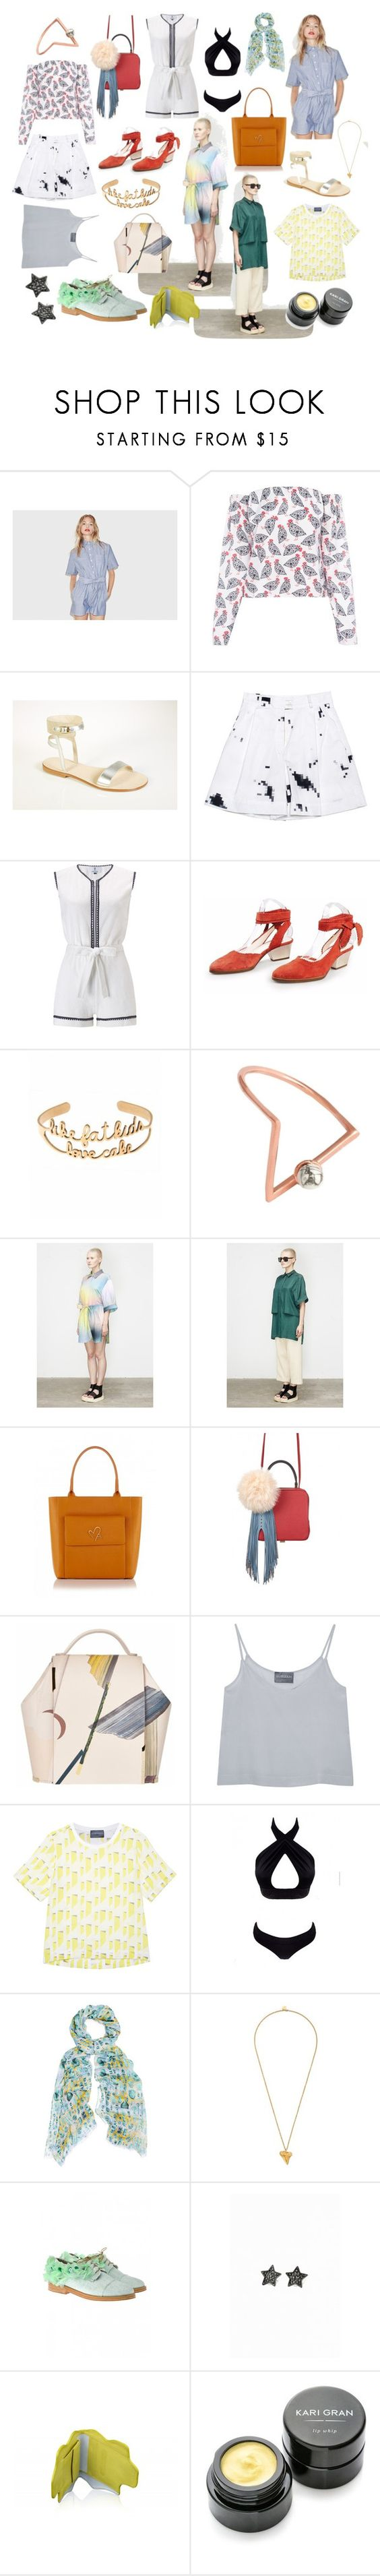 """Labor Day"" by runway2street ❤ liked on Polyvore featuring FLOW the Label, Cornetti, Ksenia Schnaider, Laura Manara, Zoe Lee, VANINA, LeiVanKash, Berenik, The Volon and Antipodium"